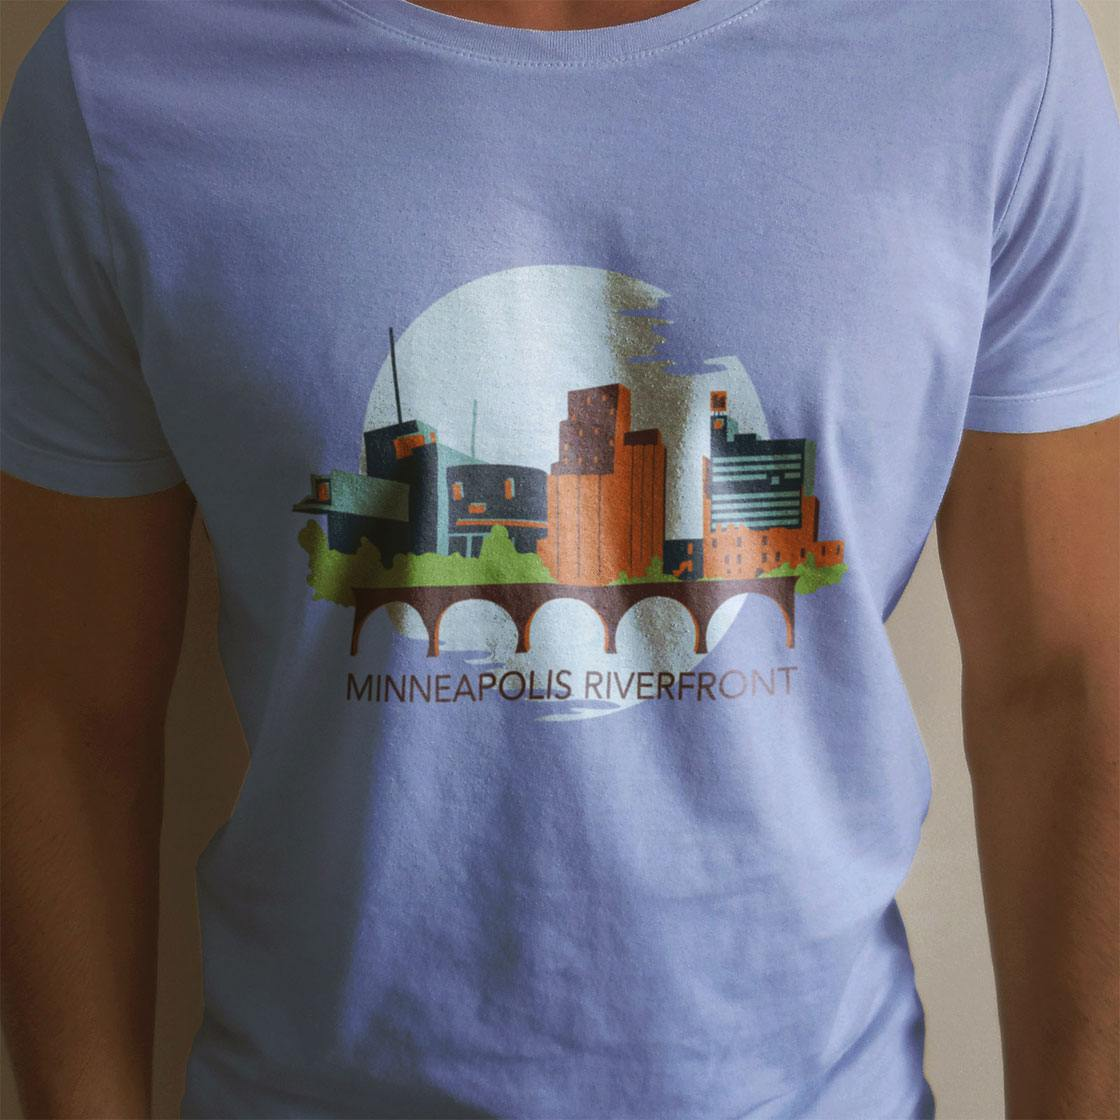 Someone modeling a t shirt with an illustration of a skyline with the words minneapolis riverfront